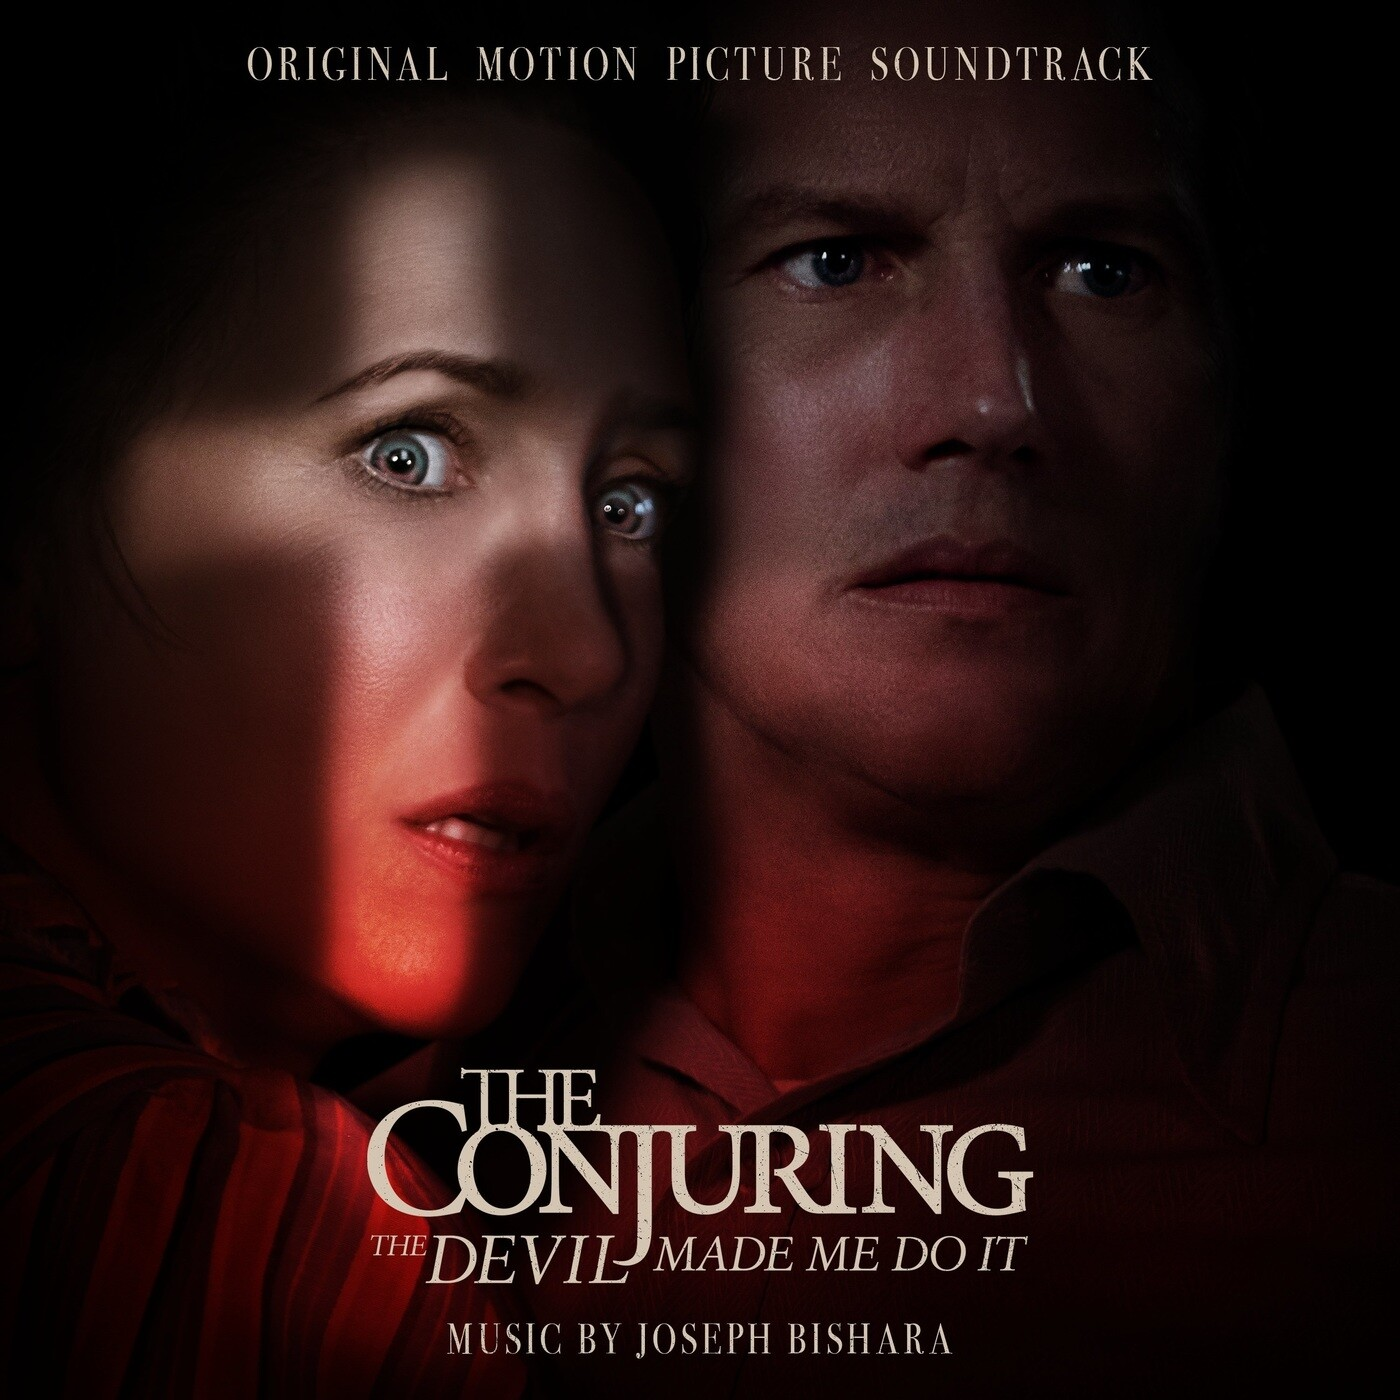 the conjuring 3 the devil made me do it soundtrack invocacao do mal 3 trilha sonora